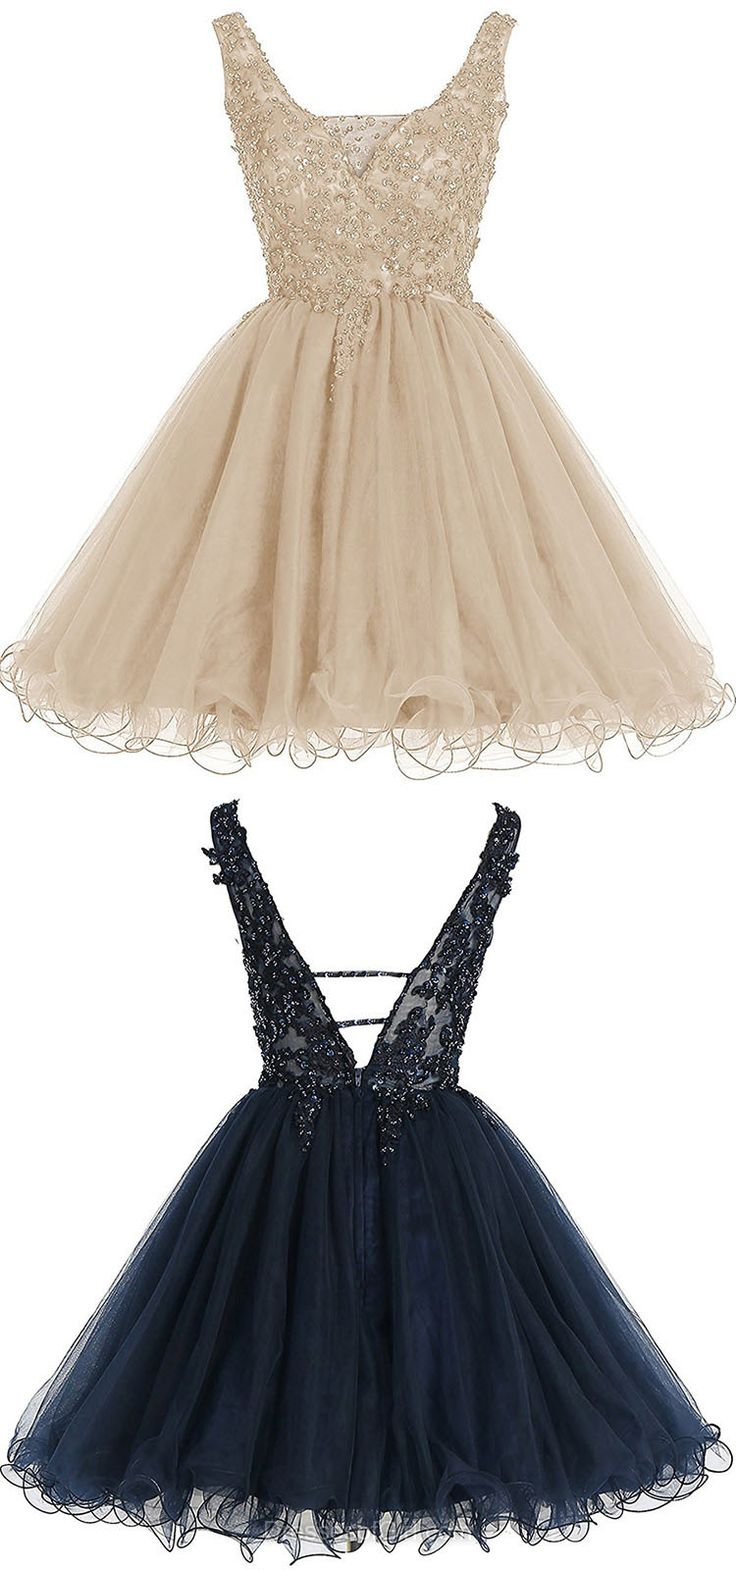 Beading Party Gowns, Champagne Cocktail Dresses, Backless Prom Dresses, Short Homecoming Dresses, Cheap Graduation Dresses